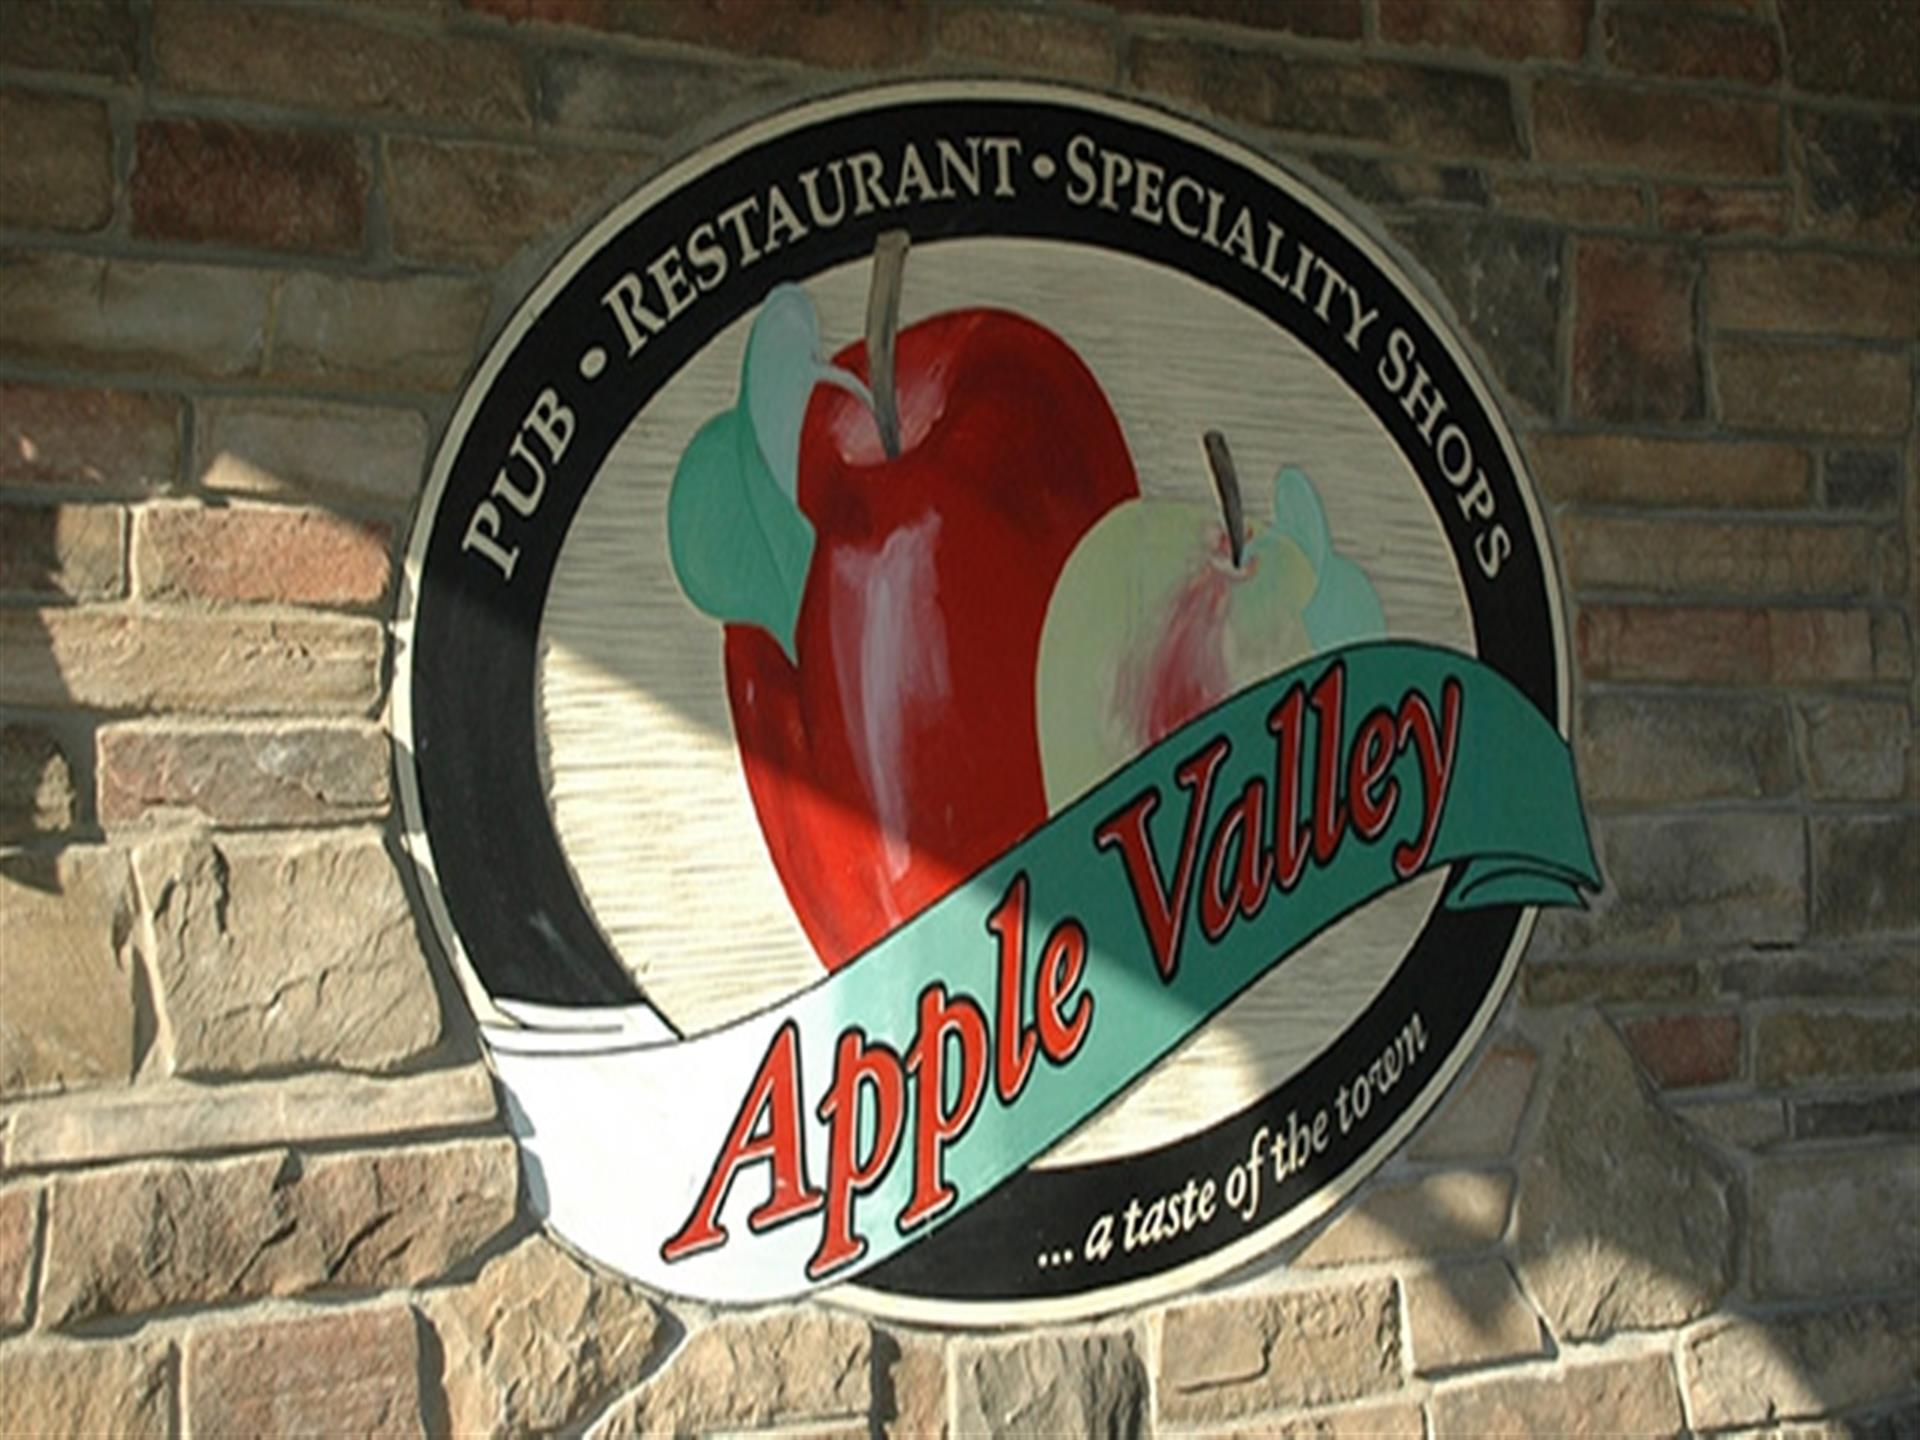 Apple Valley Sign on stone wall. Pub, Restaurant, Specialty shops. A taste of the town.